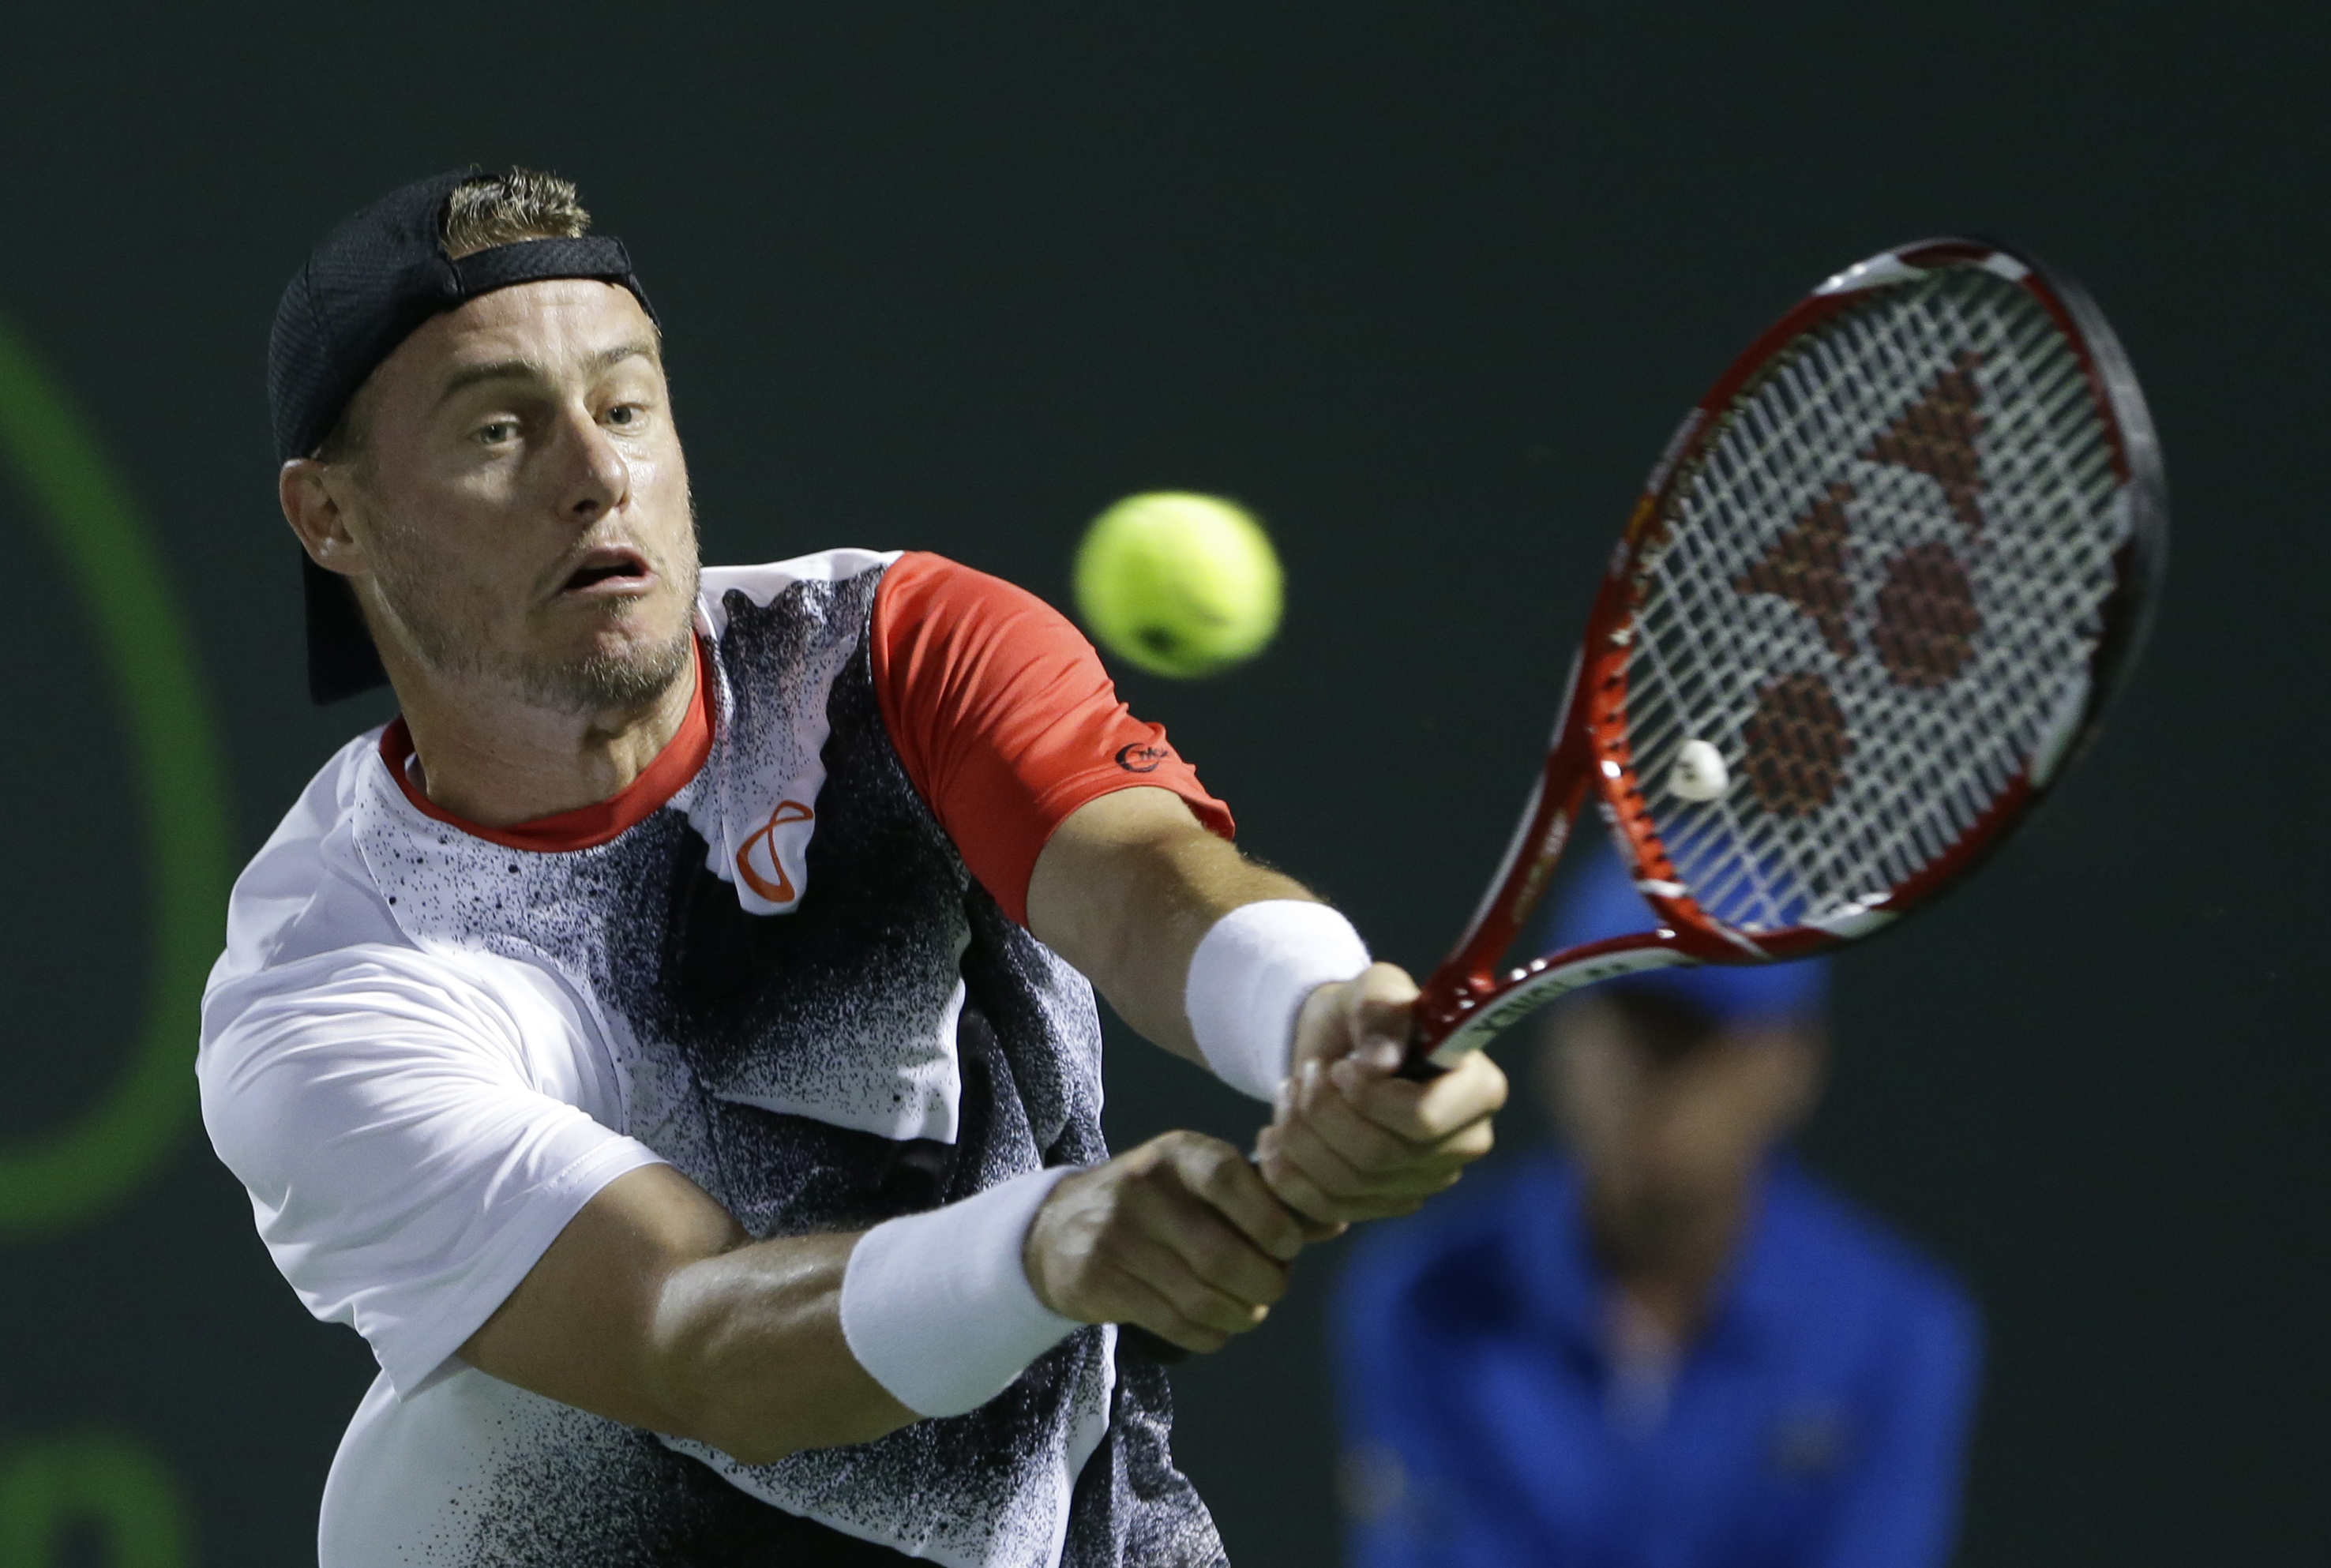 Lleyton Hewitt of Australia, returns a shot from Thomaz Bellucci of Brazil, at the Miami Open tennis tournament, Thursday, March 26, 2015 in Key Biscayne, Fla. (AP Photo/Wilfredo Lee)